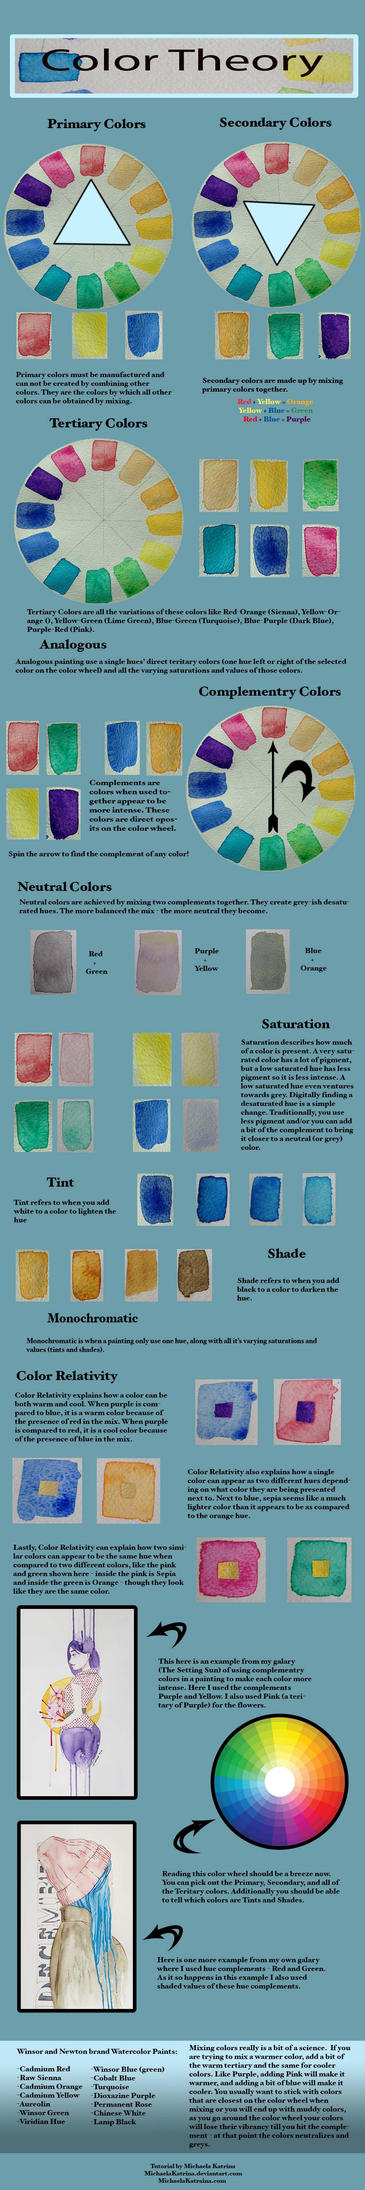 Color Theory Favourites By Gbmelendez23k On Deviantart